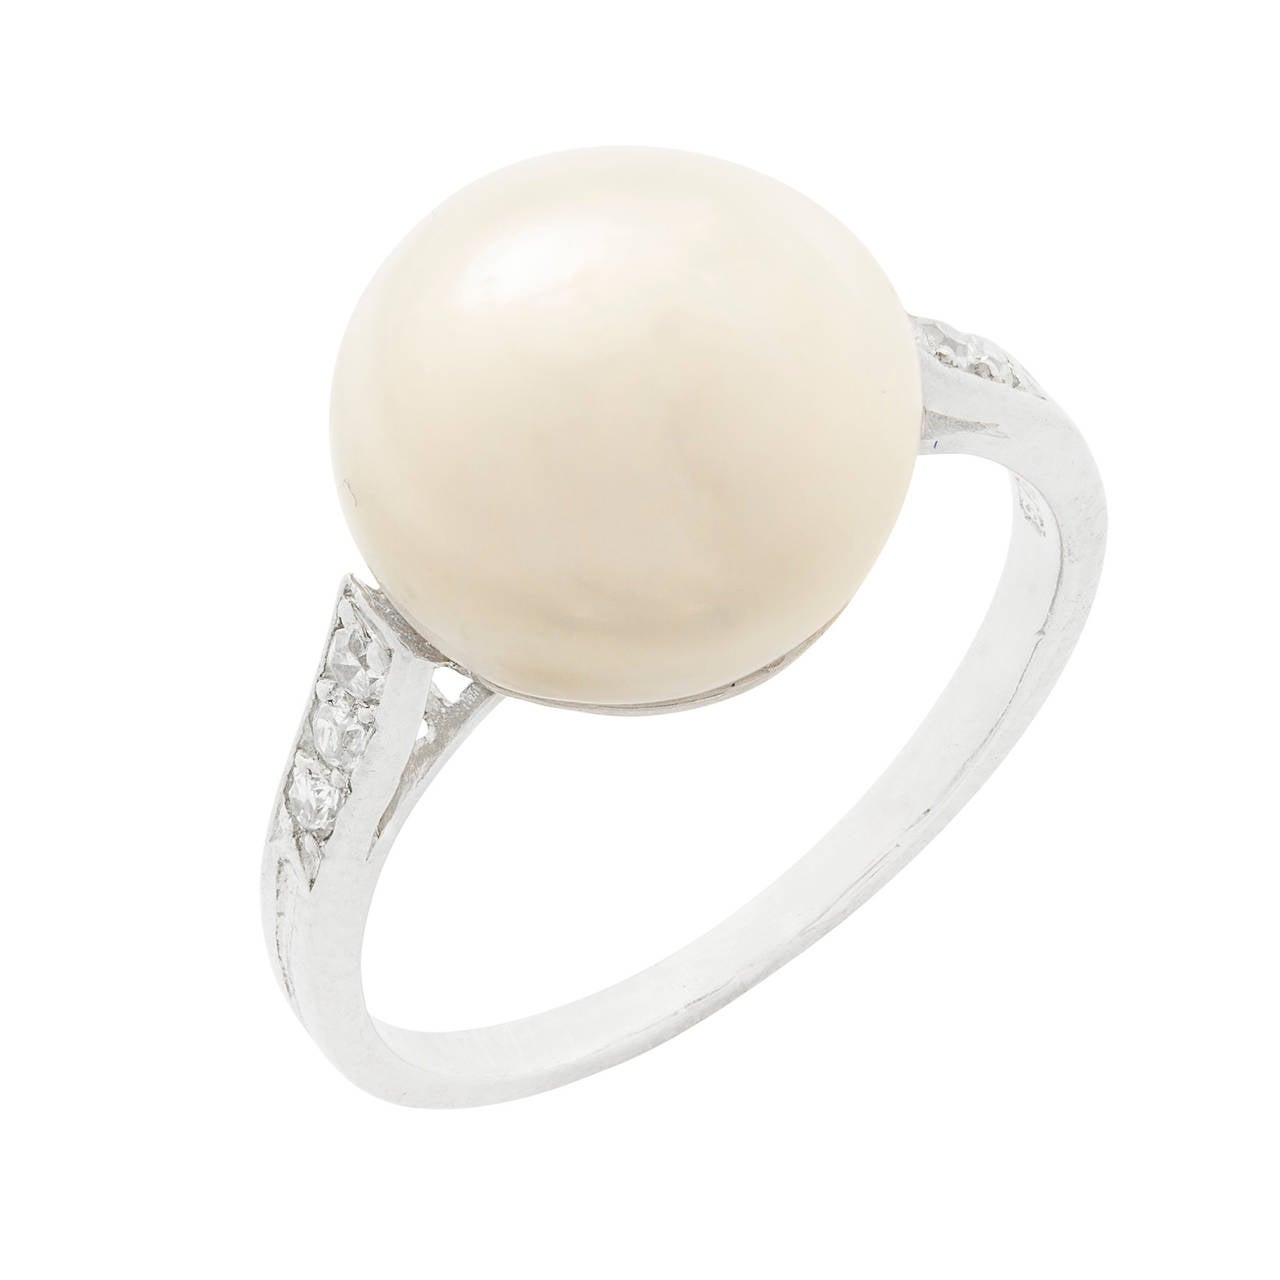 A bouton shaped natural pearl ring with diamond set shoulders, the white bouton shaped pearl measuring approximately 10.5 mm in diameter to the centre of three old brilliant-cut diamond-set to each shoulder. gross weight 3.2 grams.